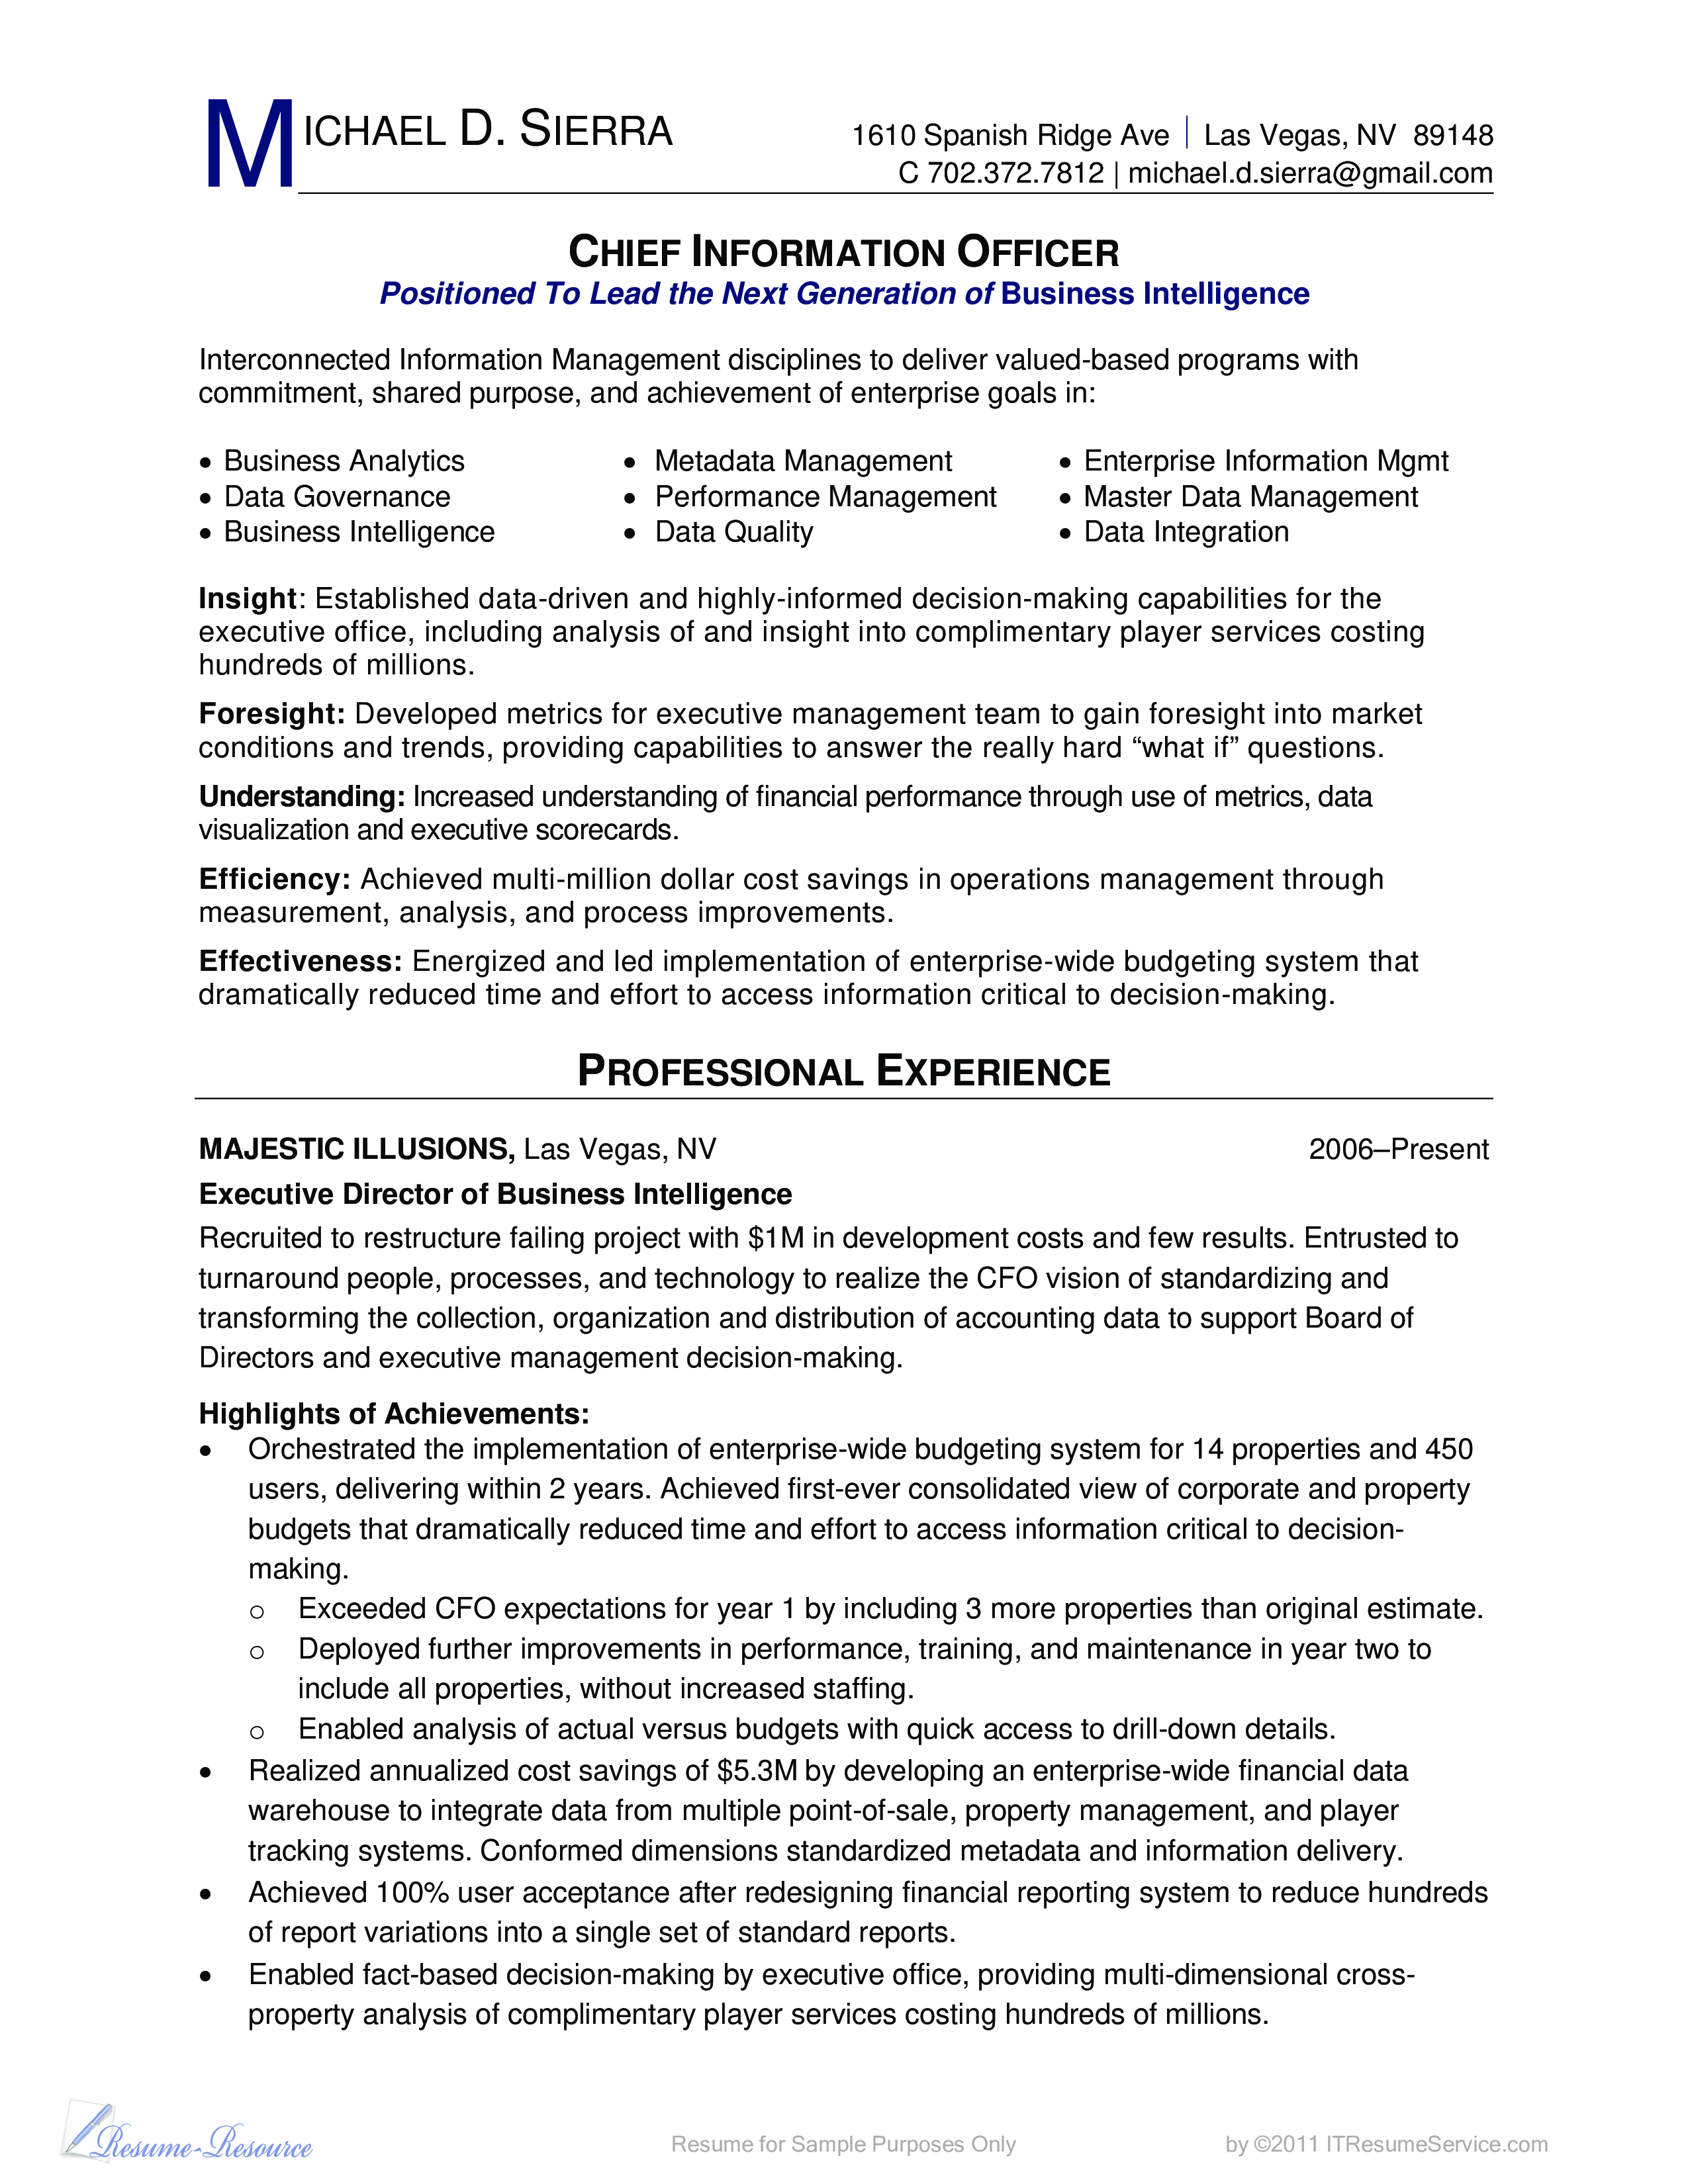 Free professional cio cv for bi business templates at professional cio cv for bi business main image download template accmission Image collections